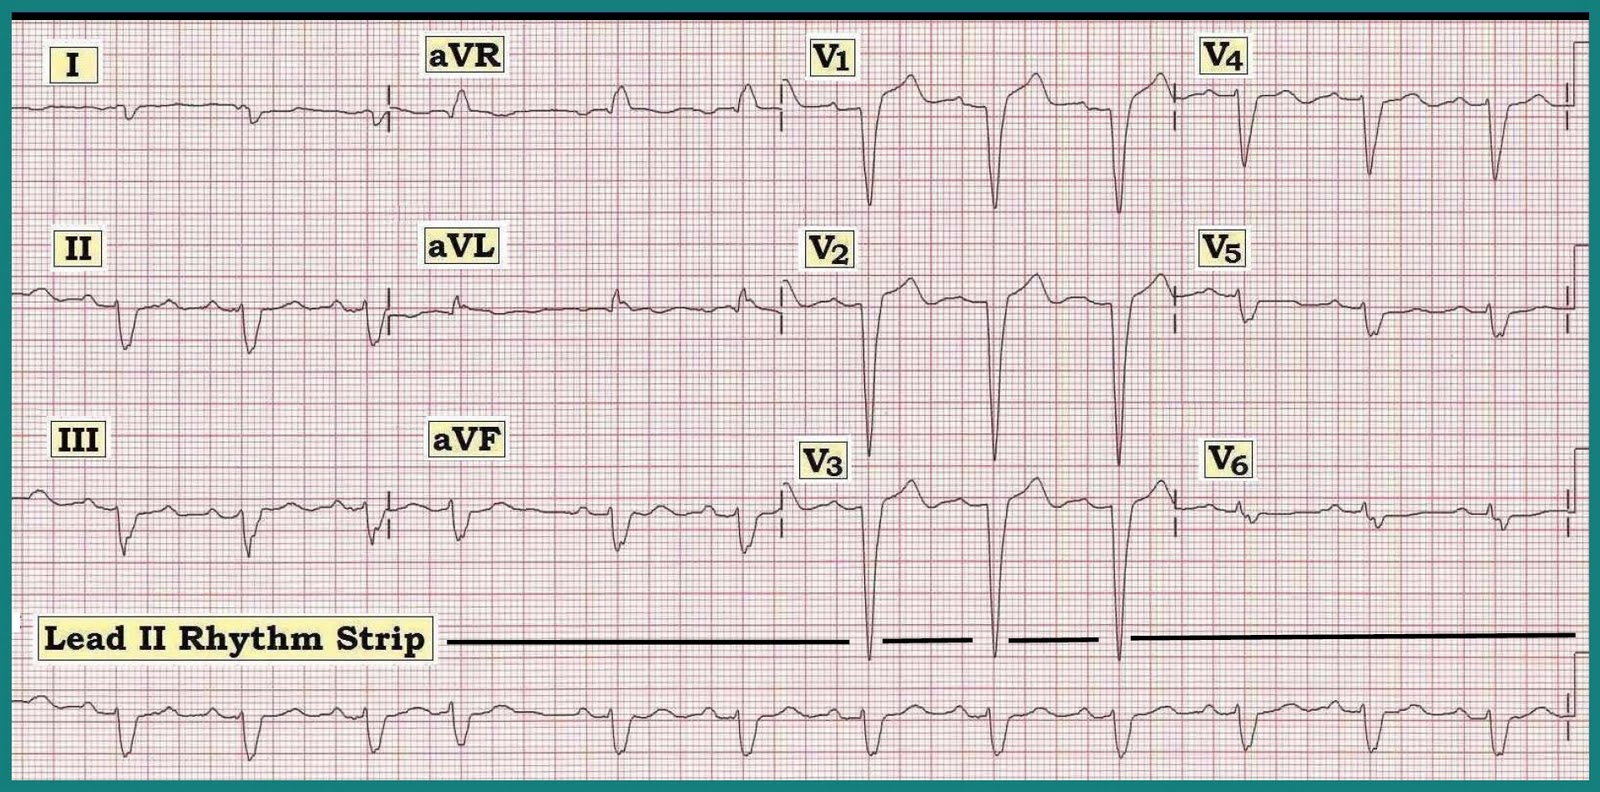 Ecg Interpretation Ecg Interpretation Review 13 Bbb Wide Qrs Is